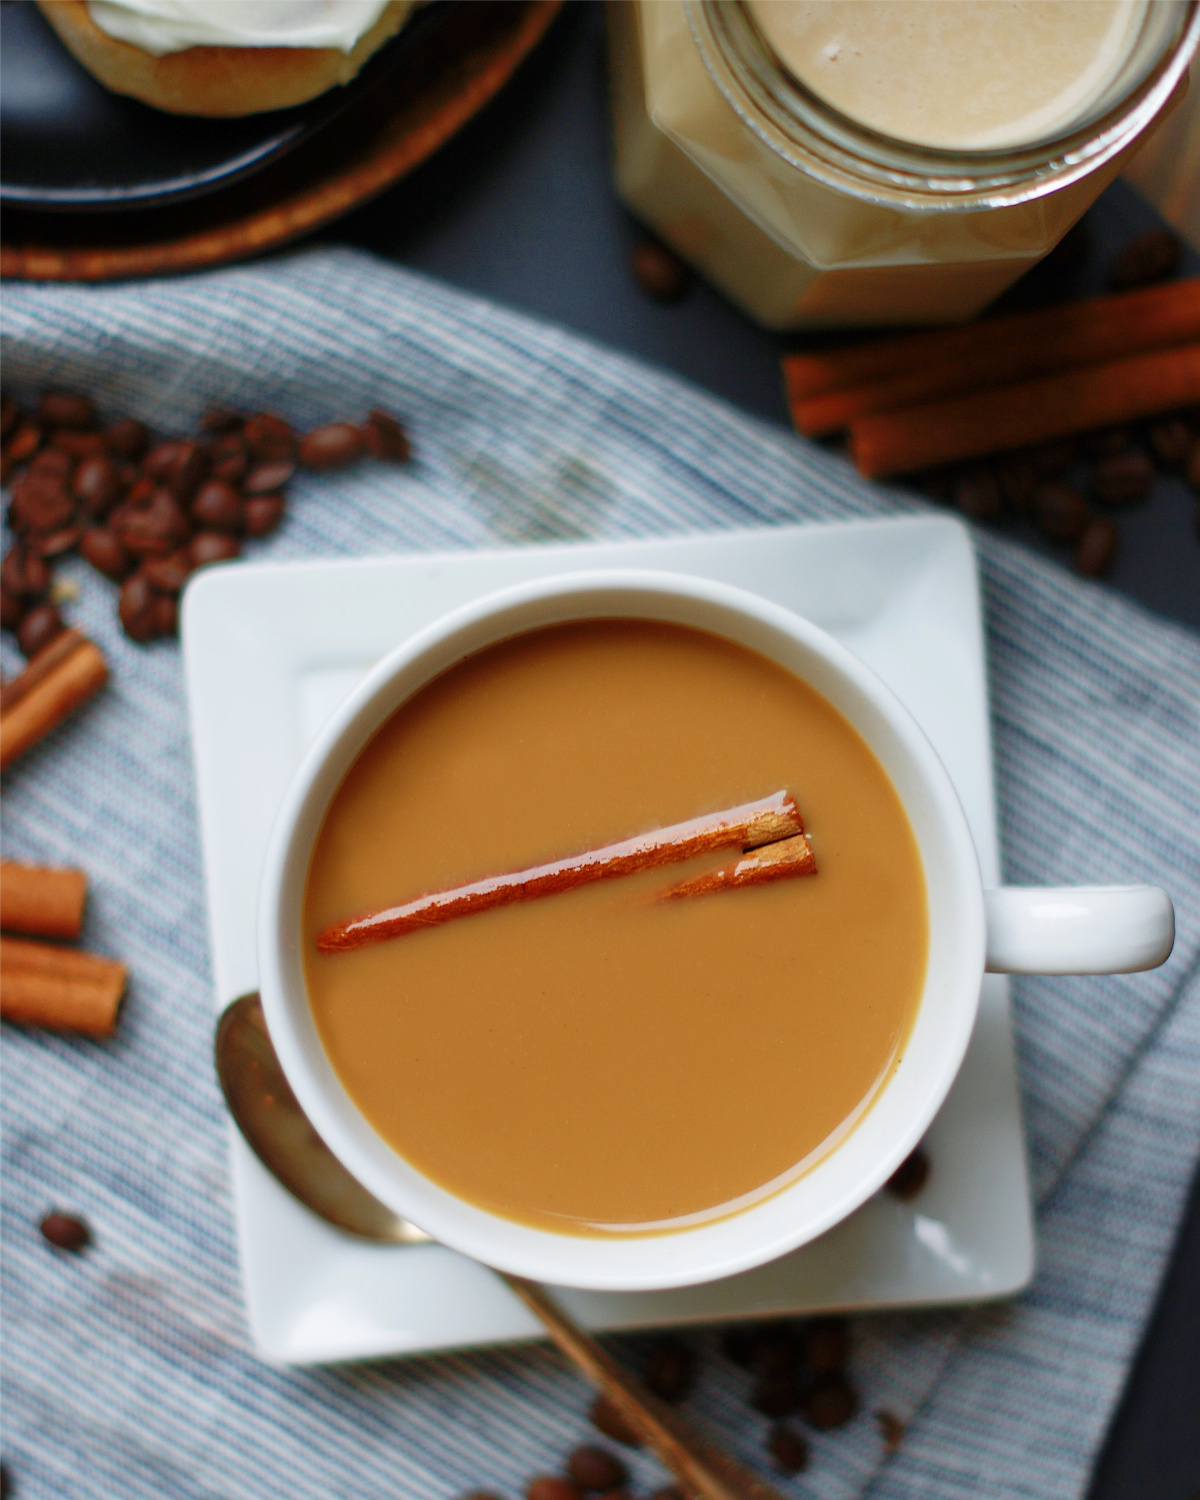 A overhead look into a cup of coffee with homemade cinnamon roll coffee creamer and cinnamon stick